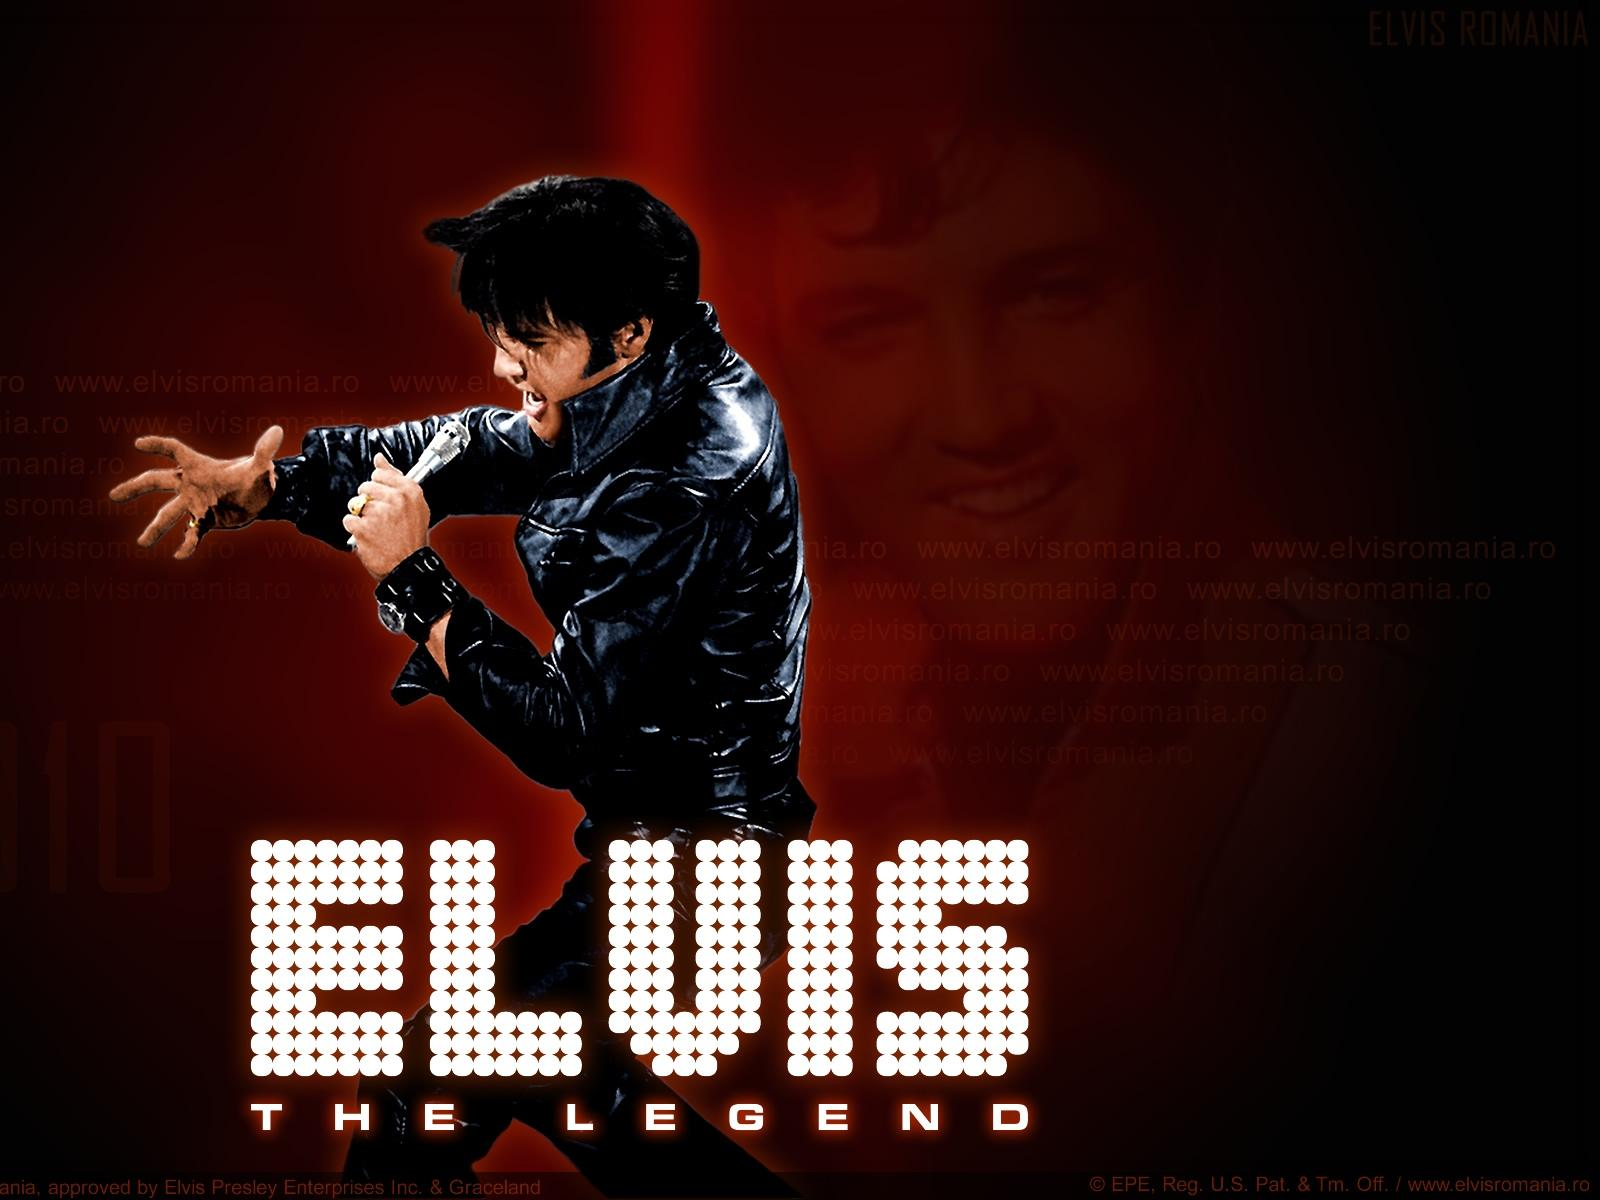 Elvis Presley Wallpapers High Resolution And Quality Download HD Wallpapers Download Free Images Wallpaper [1000image.com]